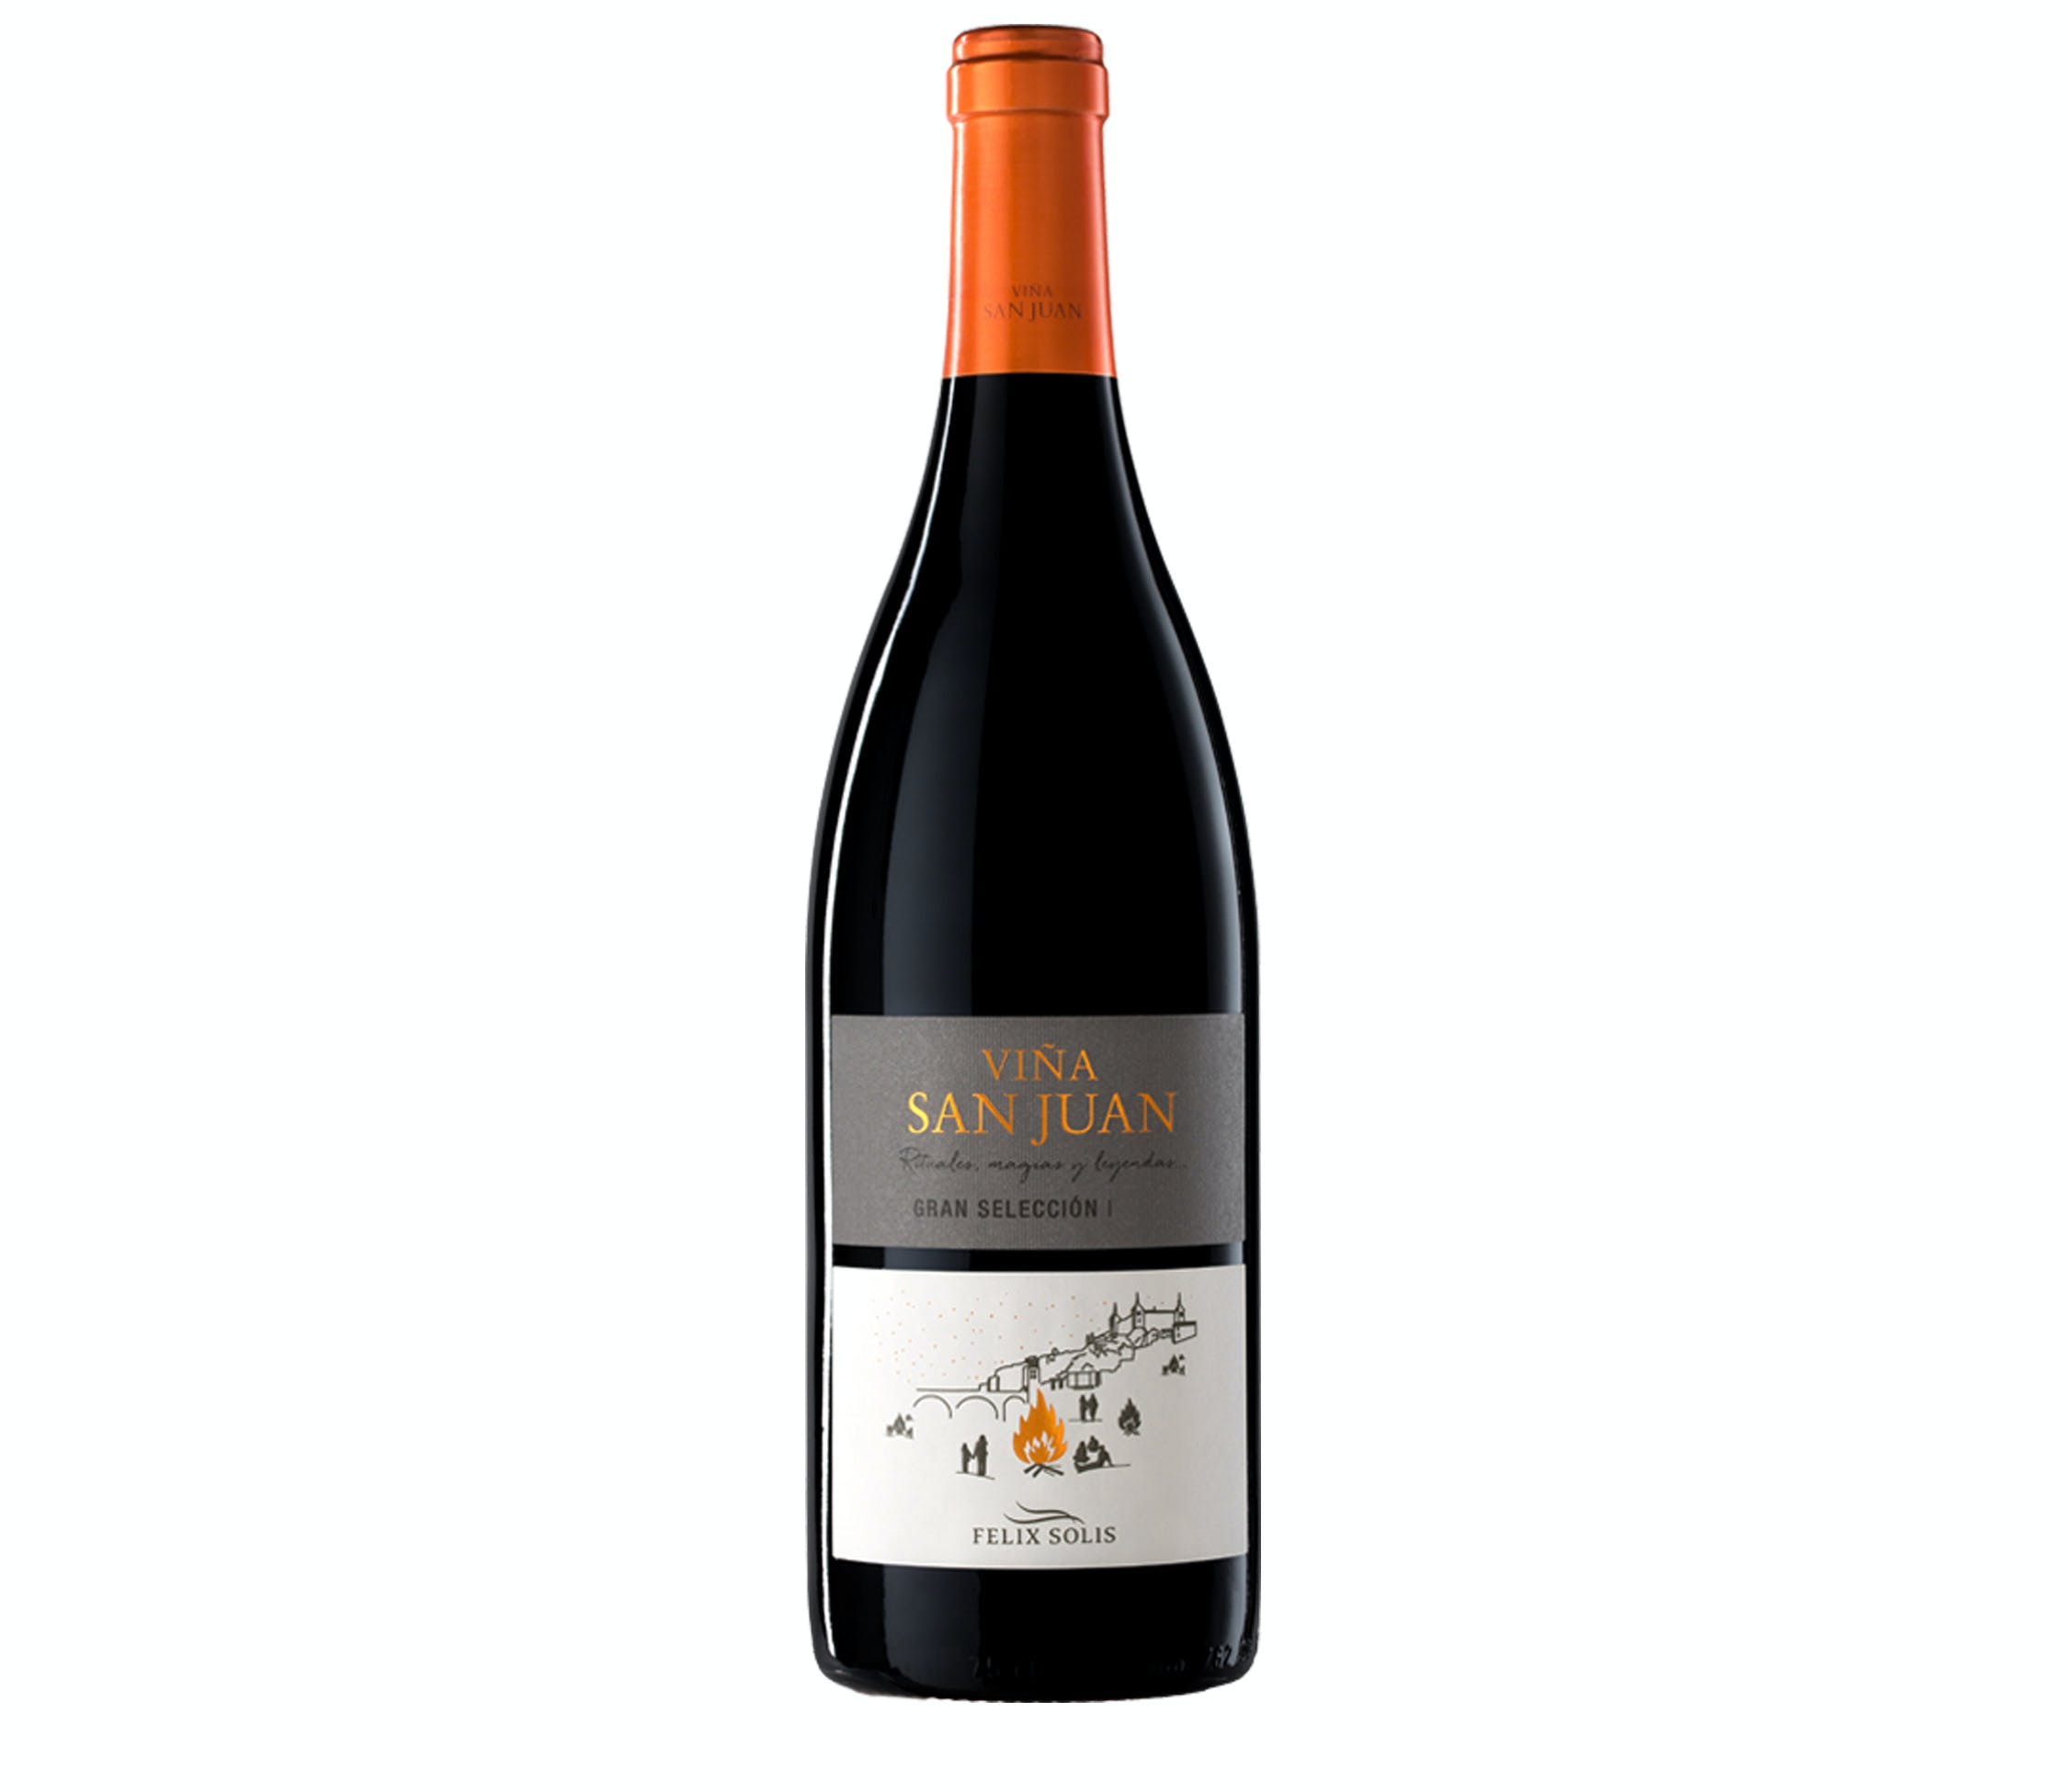 Bargain Vina San Juan, Gran Seleccion, DO La Mancha, Spain Stockists